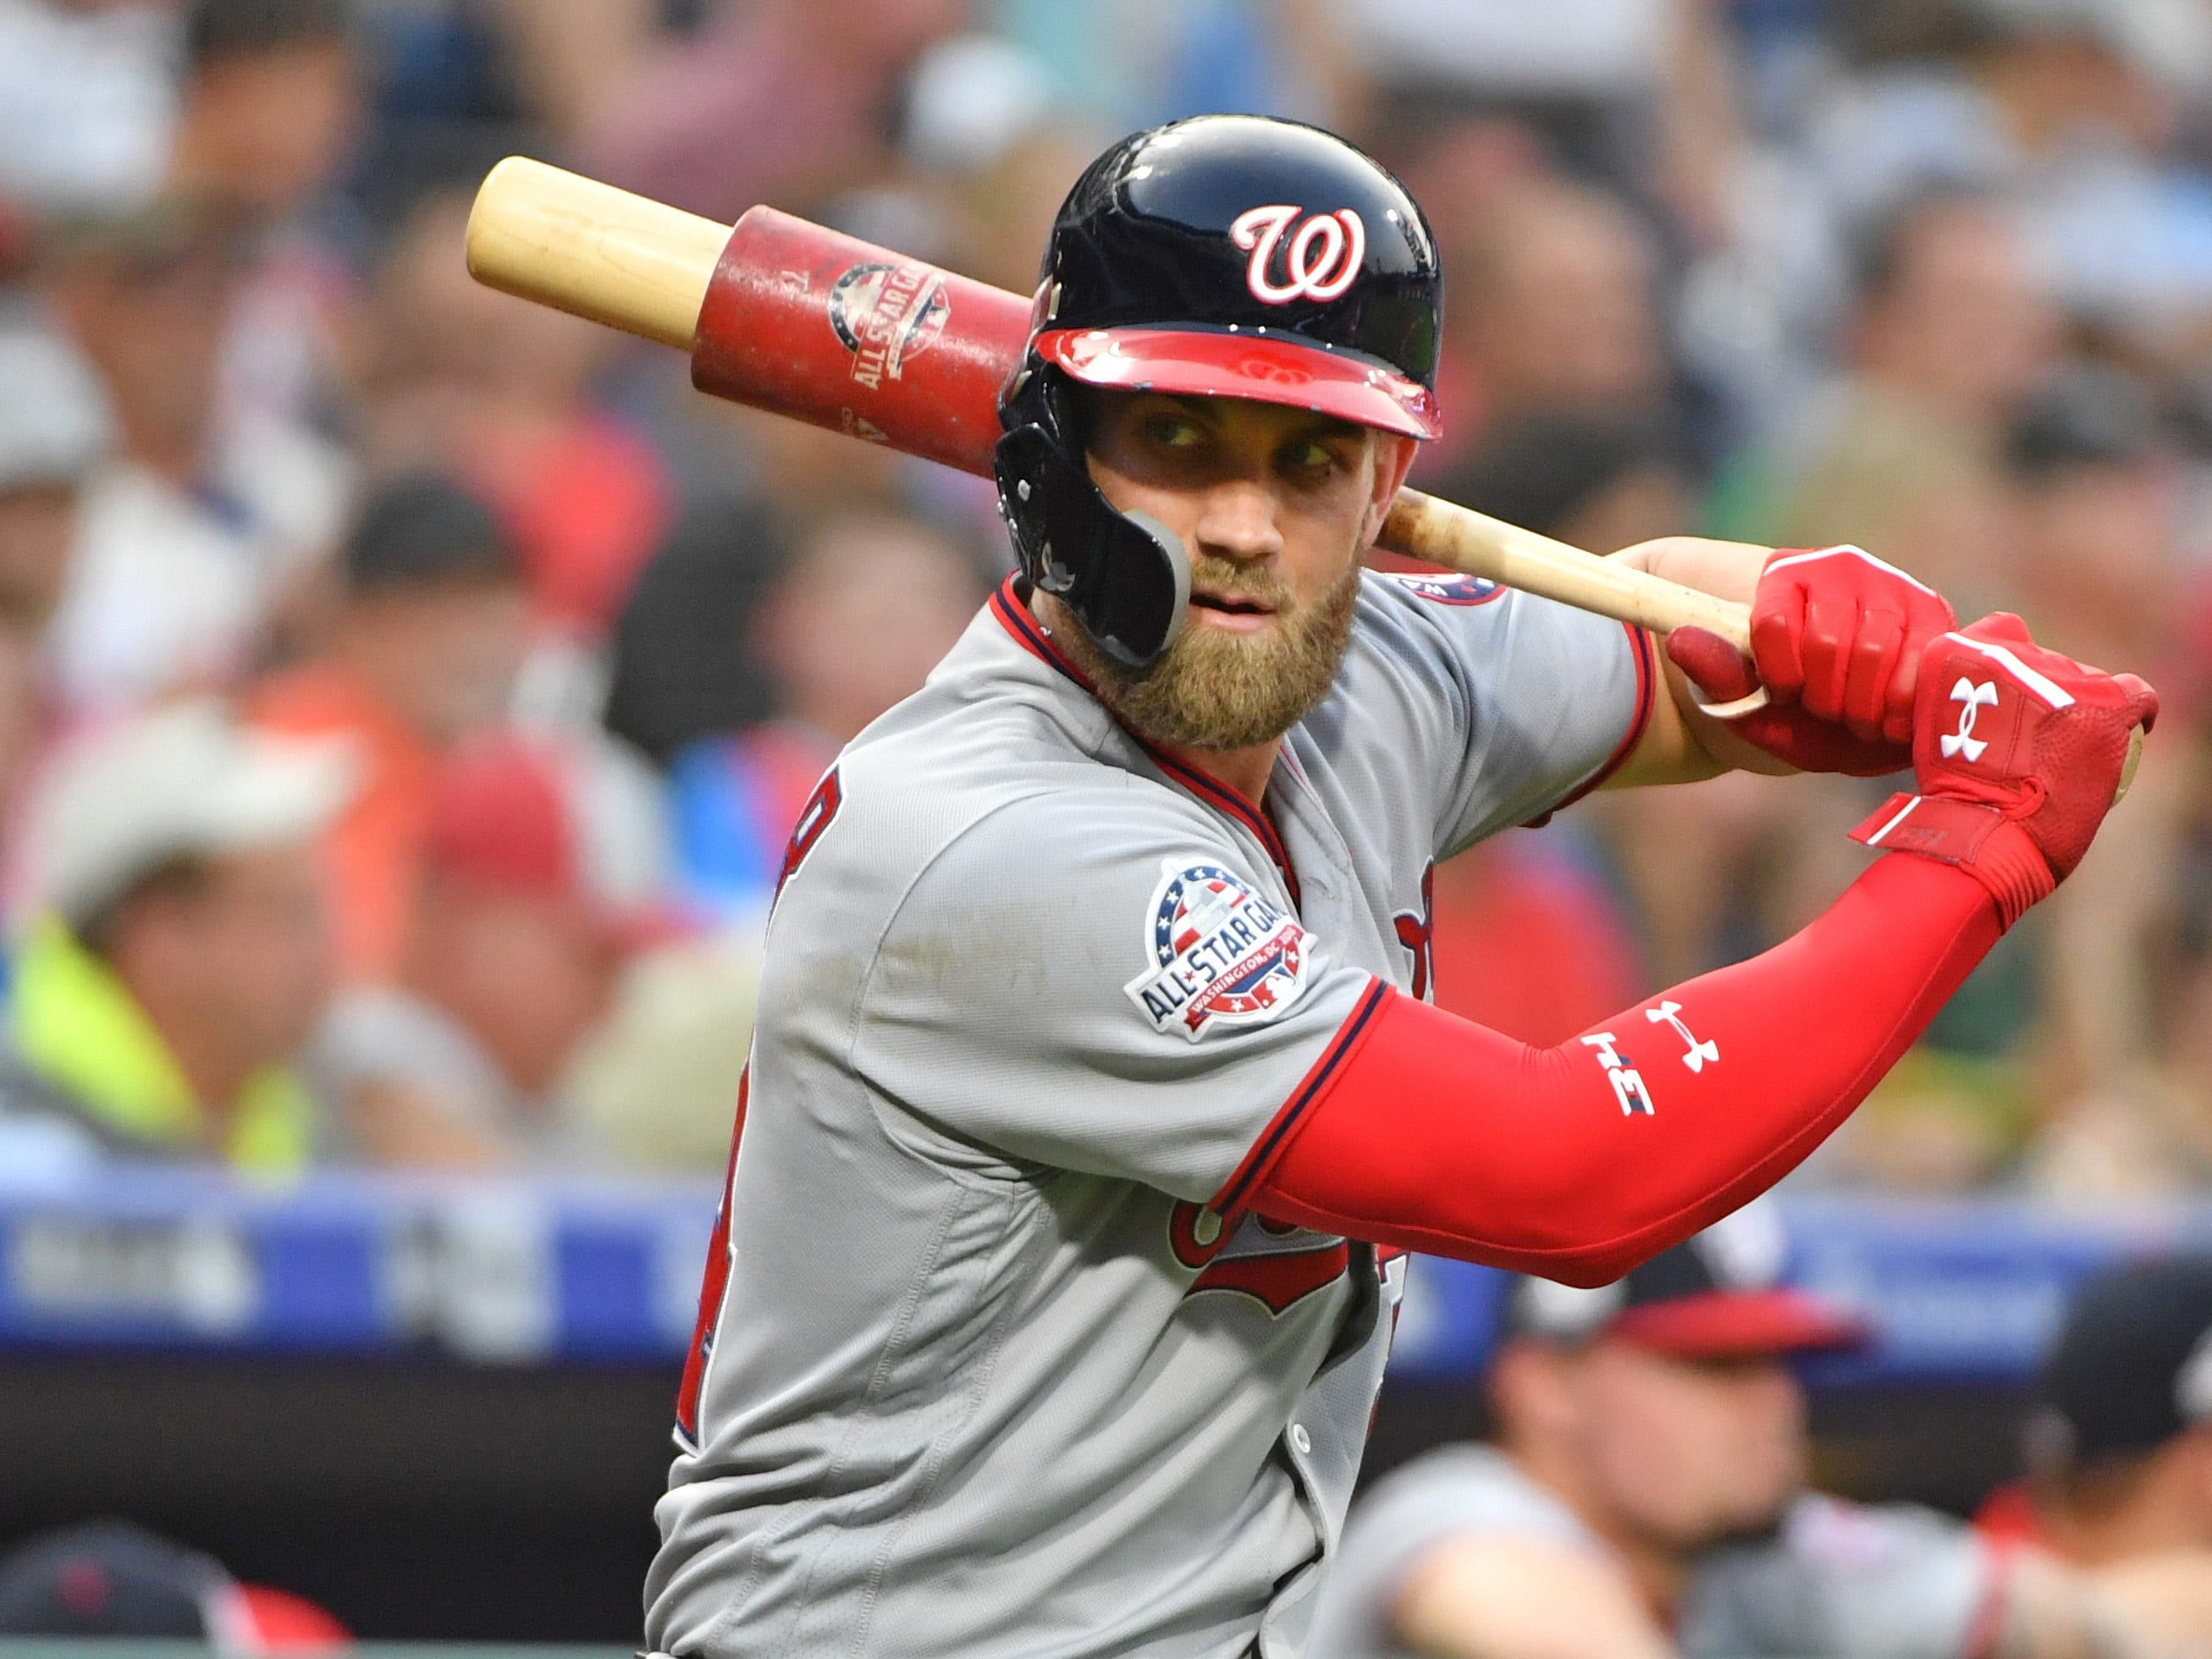 Biggest Major League Baseball contracts: Where Bryce Harper's deal ranks all-time